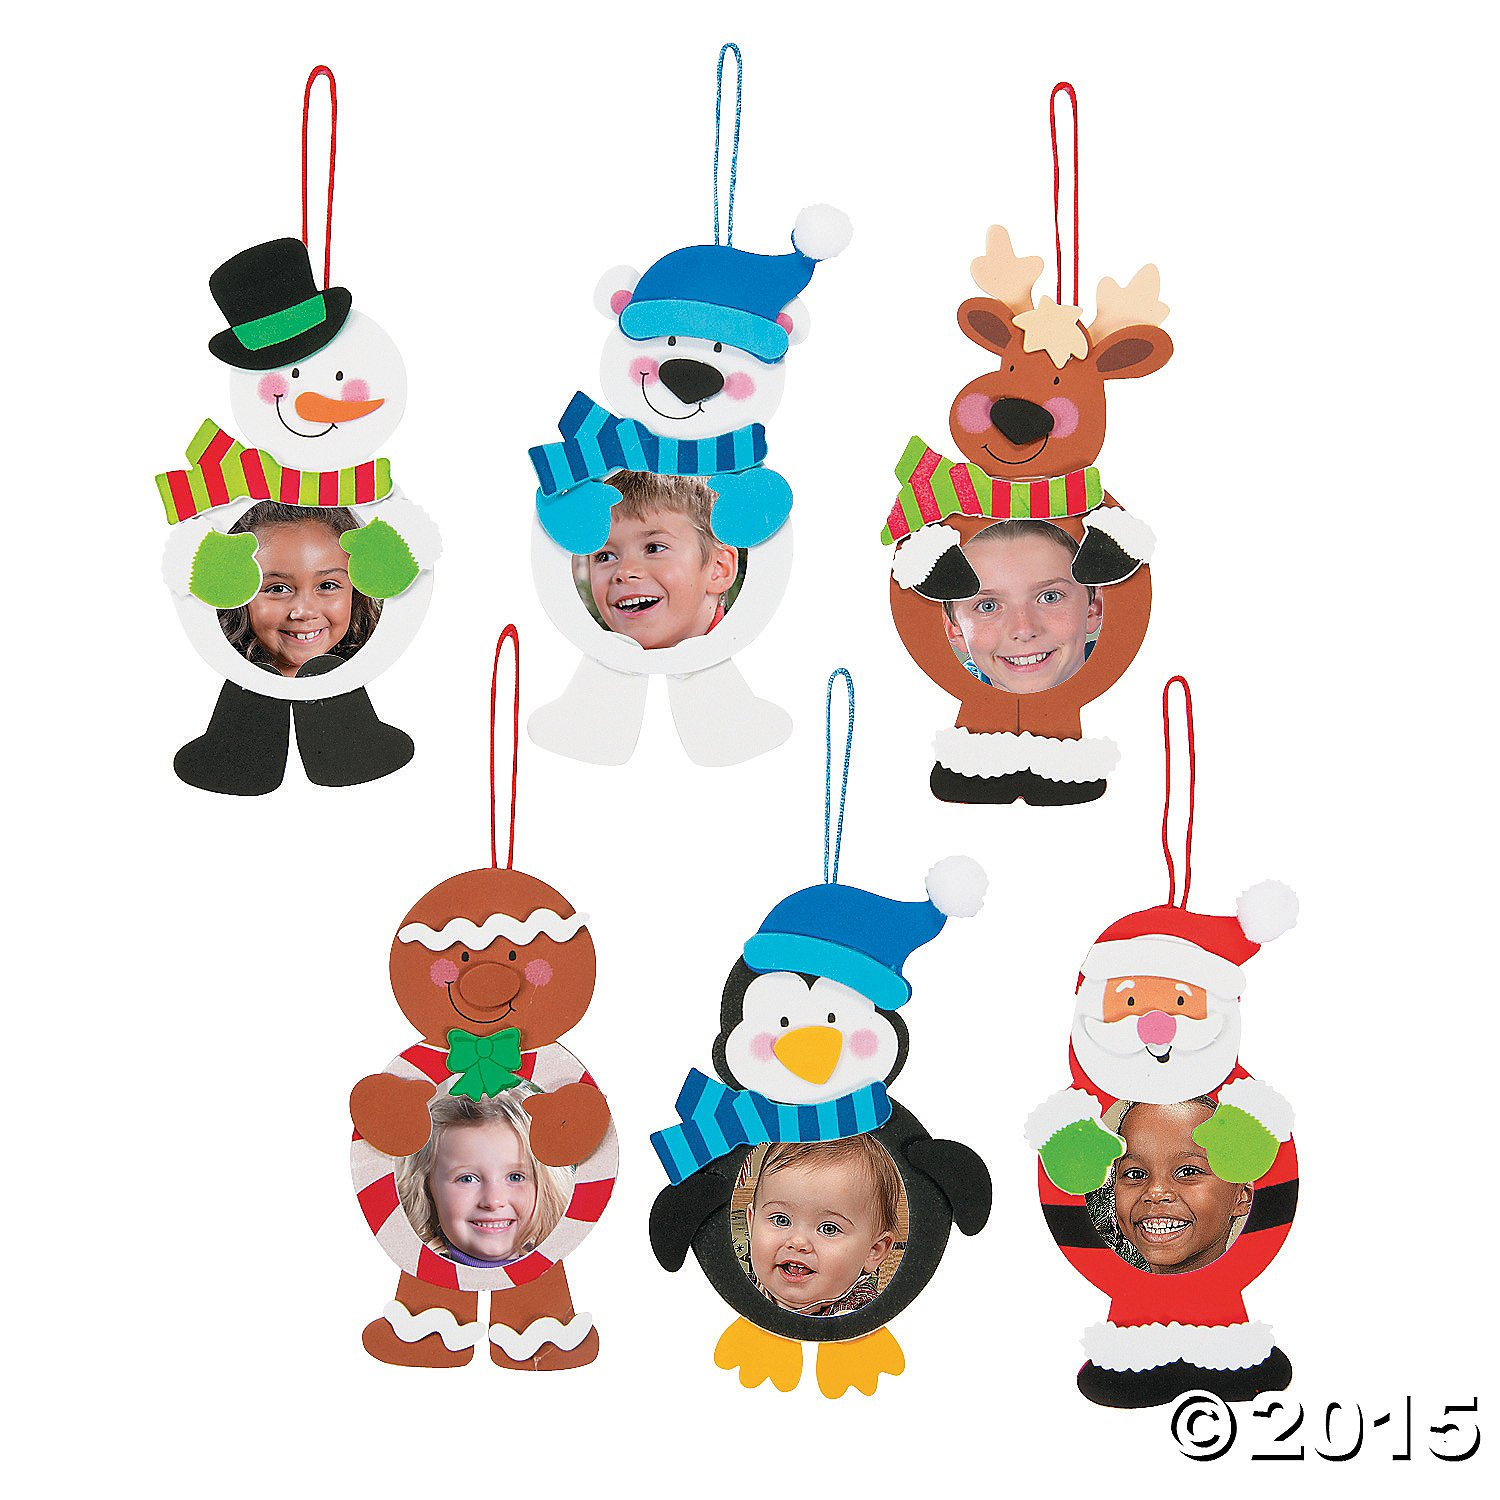 15 traditions to make christmas magical six sisters 39 stuff for Photo frame ornament craft